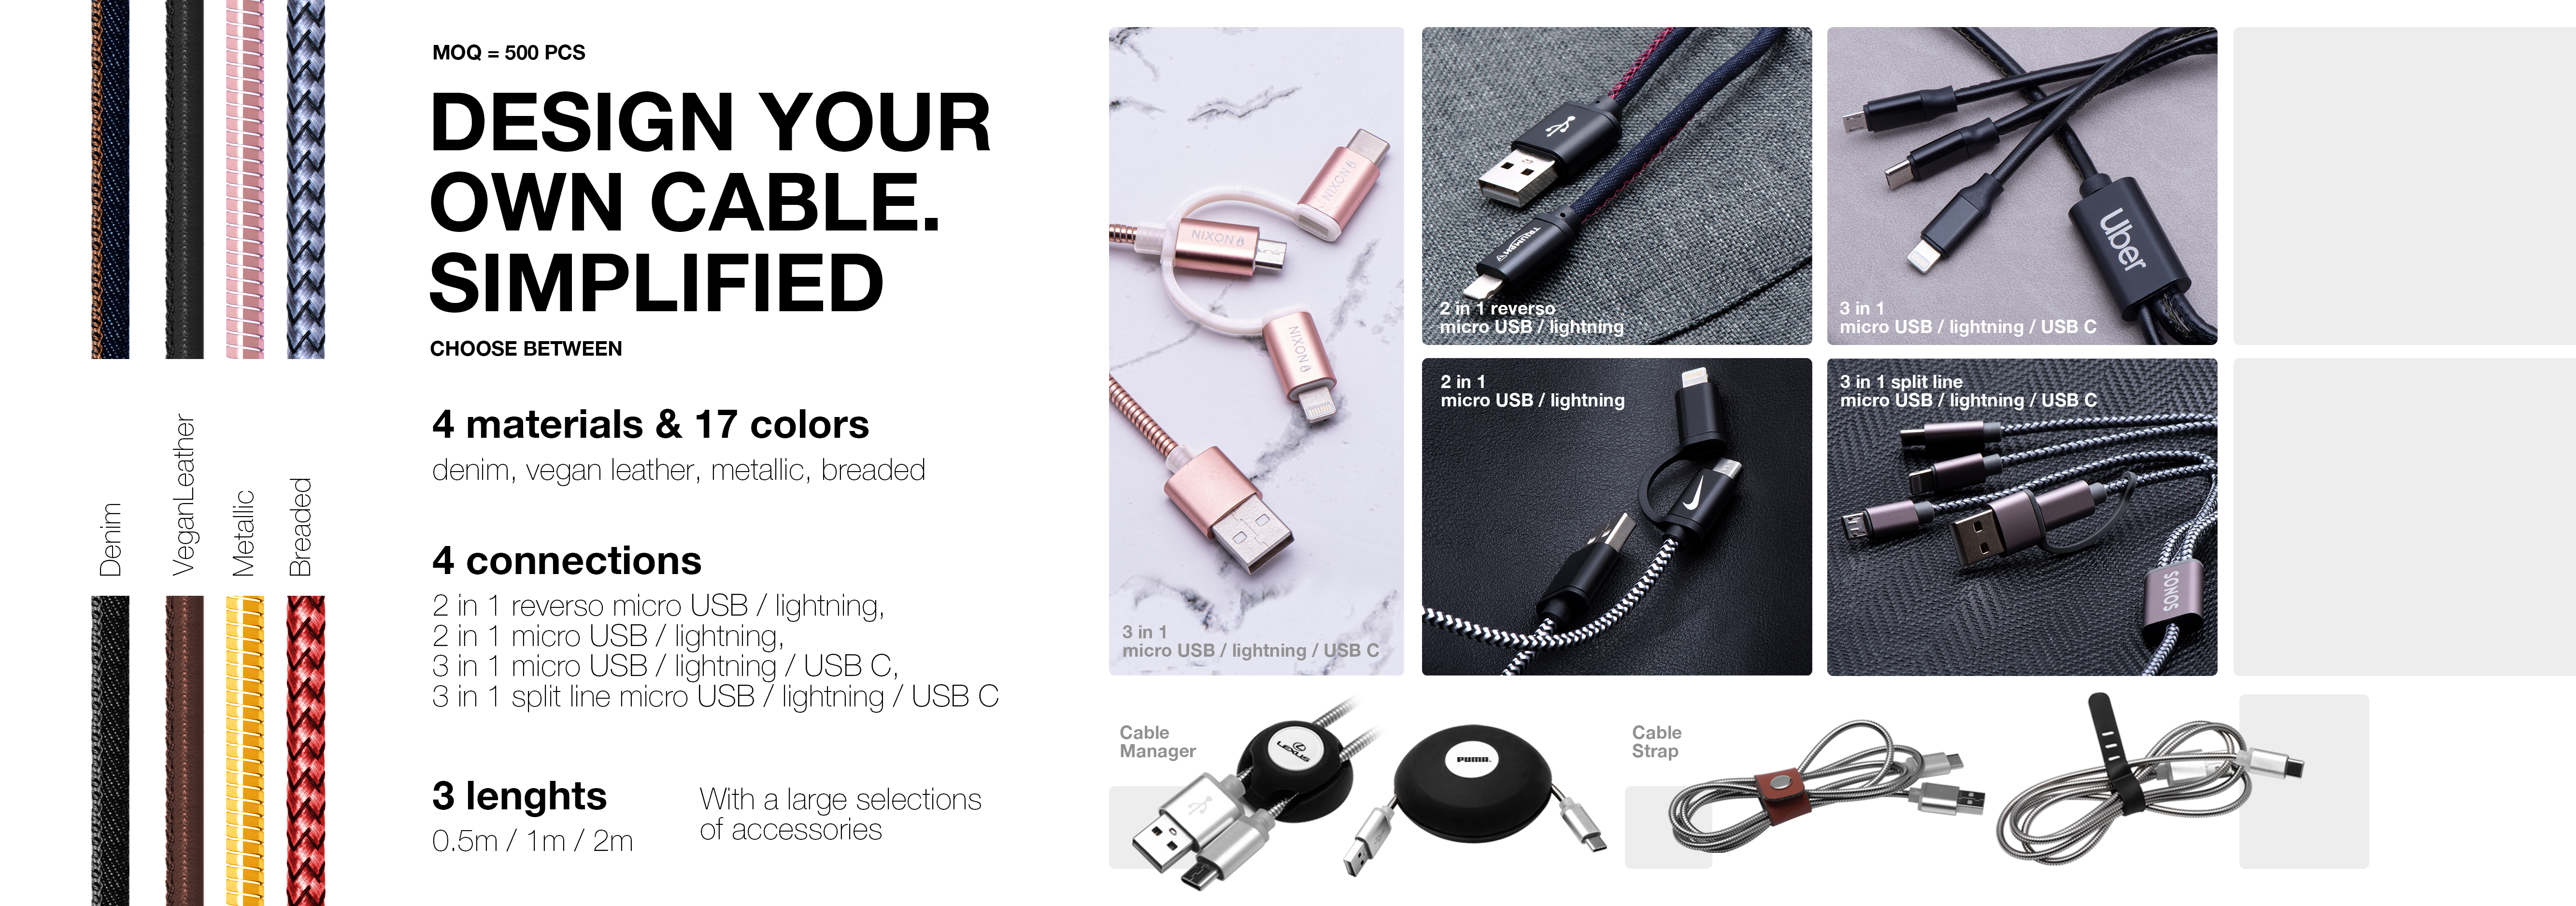 DESIGN YOUR OWN CABLE